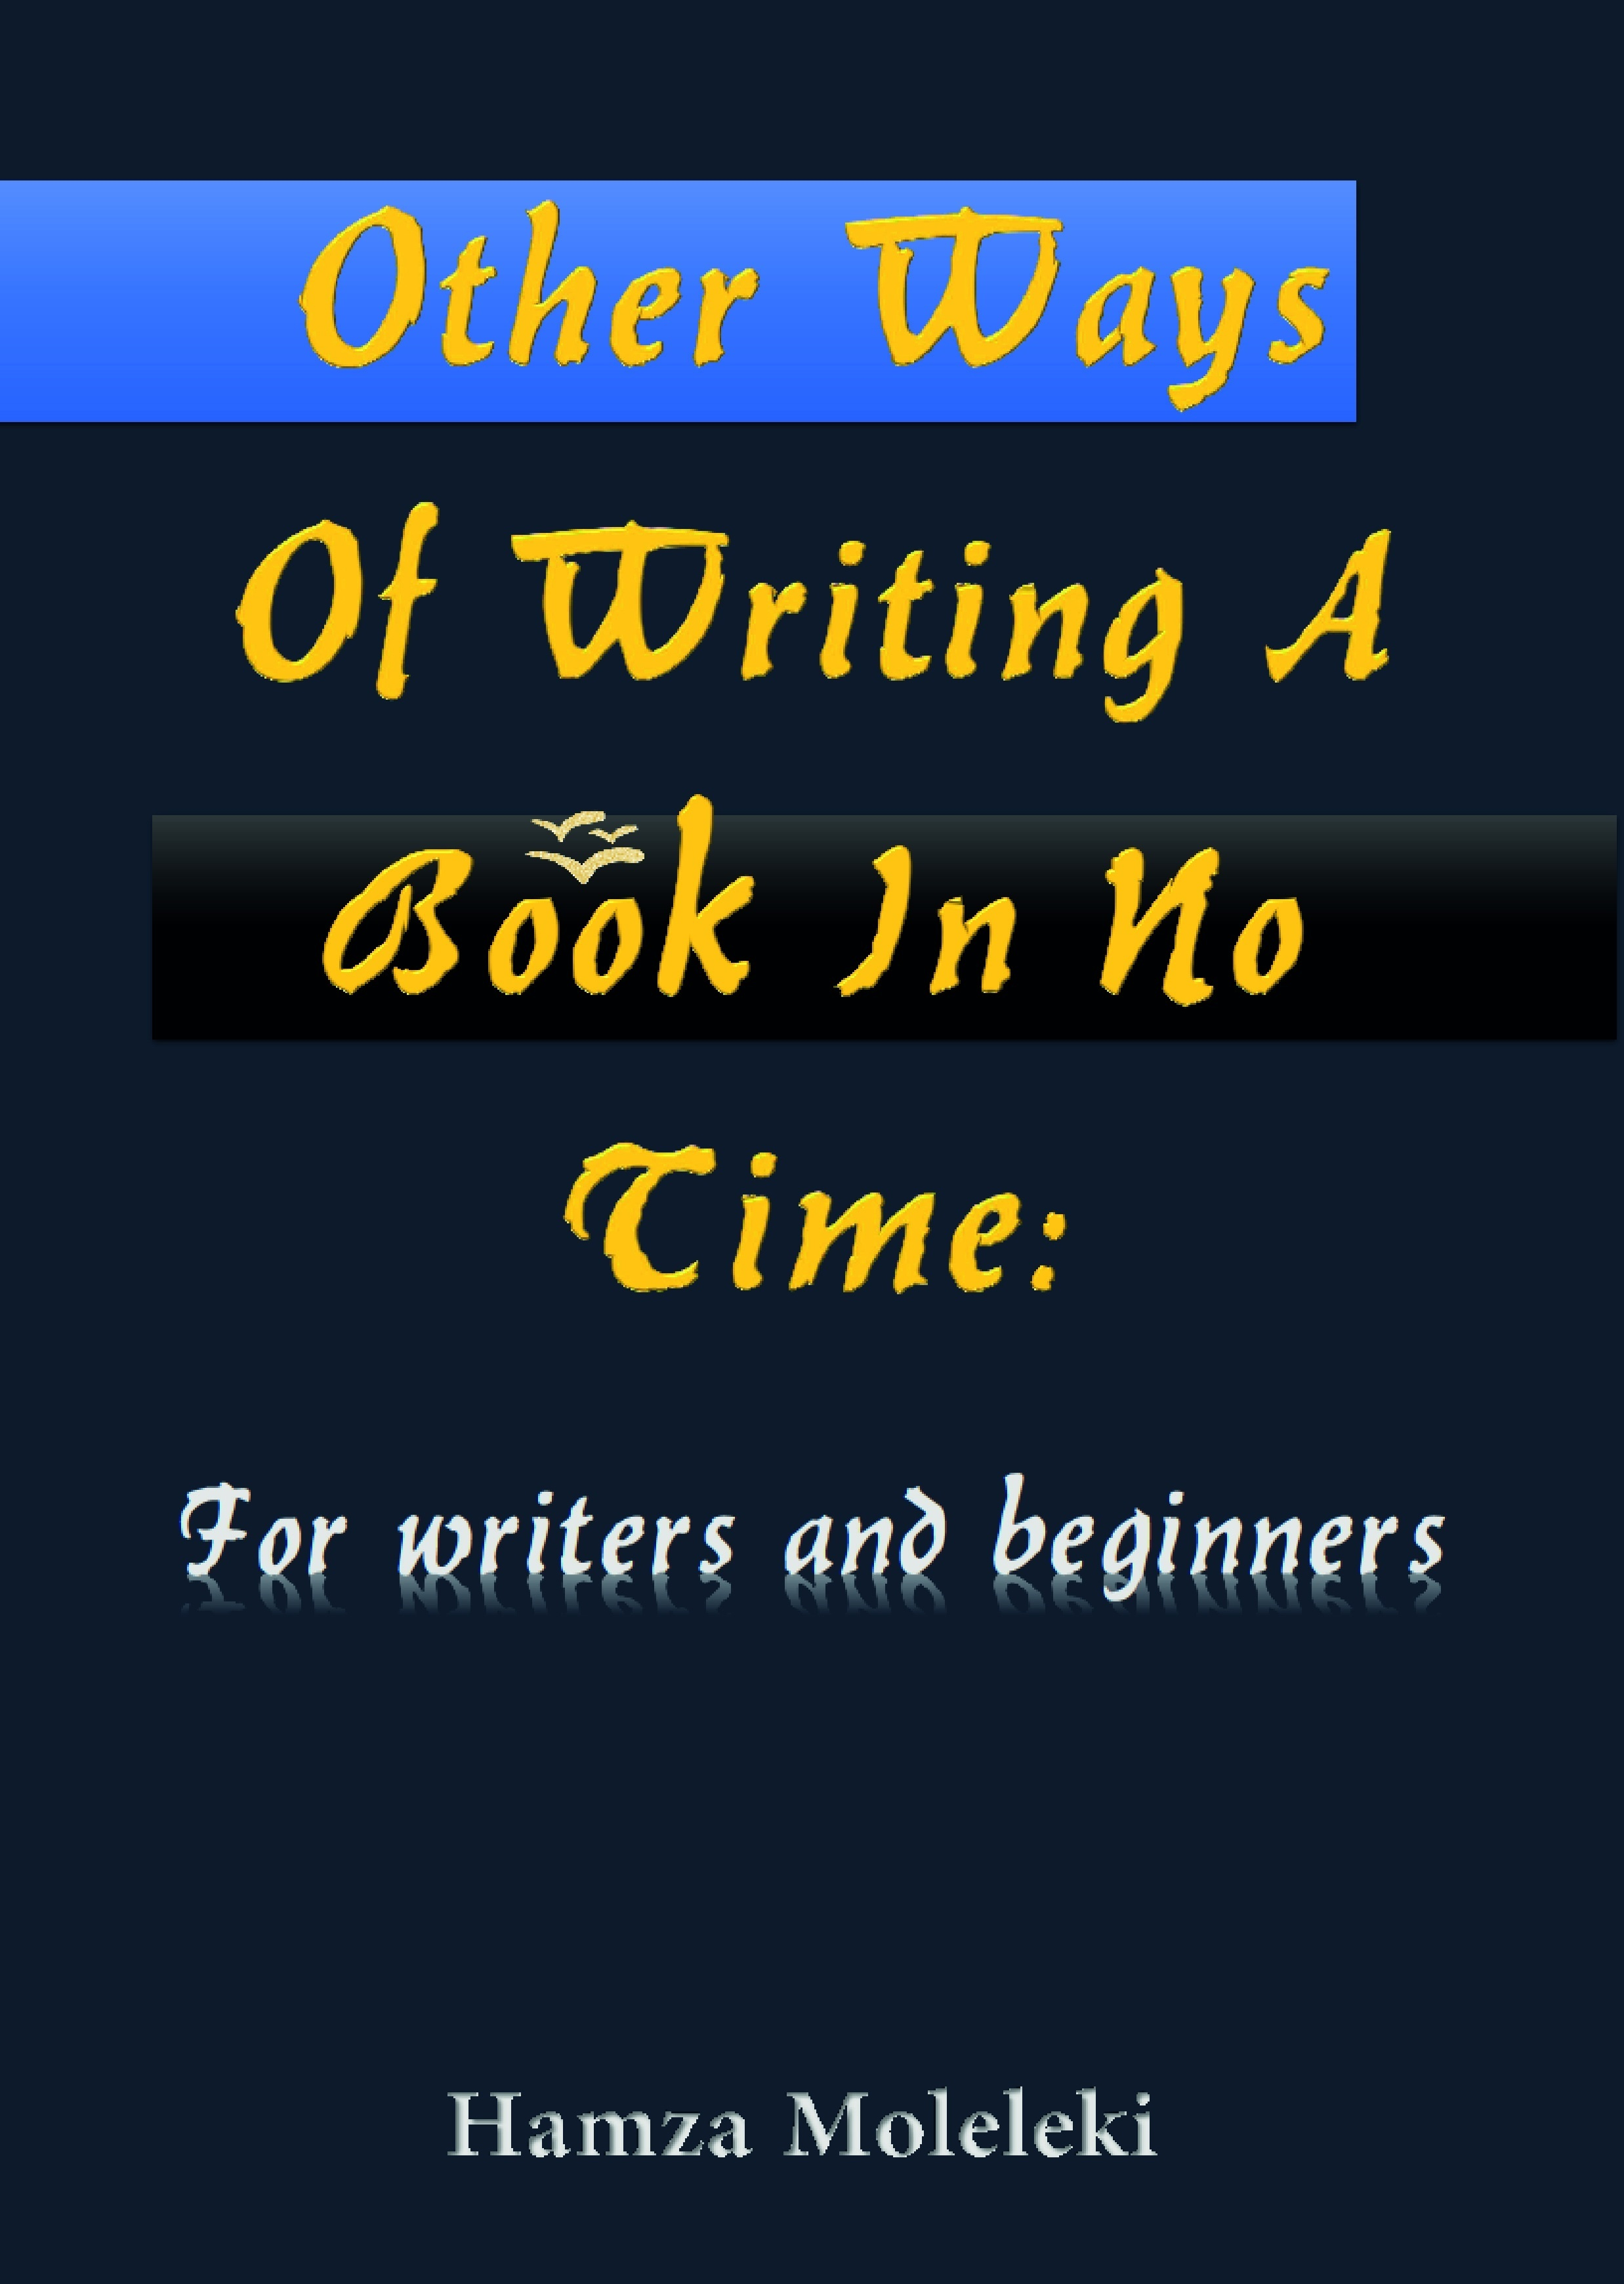 Other Ways of Writing a Book in No Time: For writers and beginners Hamza Moleleki